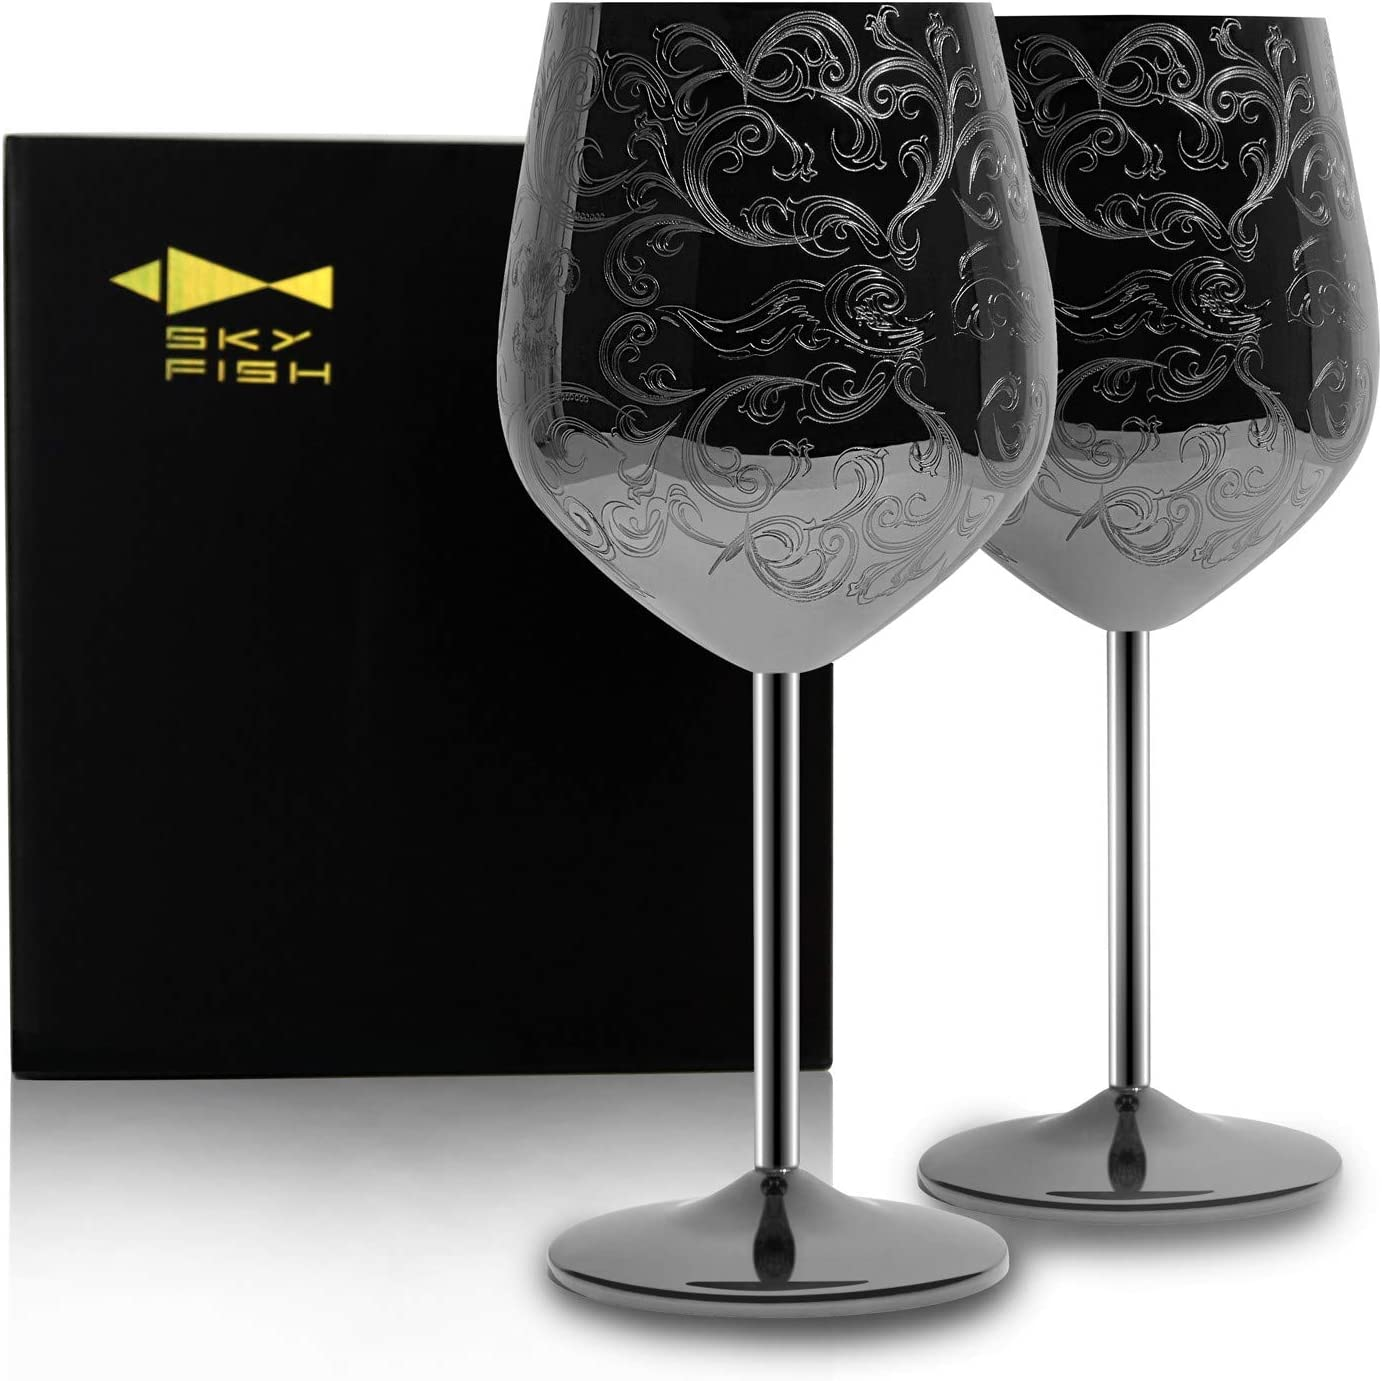 SKY FISH Stainless Steel Wine Glasses With Black Plated ,etched with intricate and authentic baroque engravings,Royal style wine goblets,Set of 2(17oz)